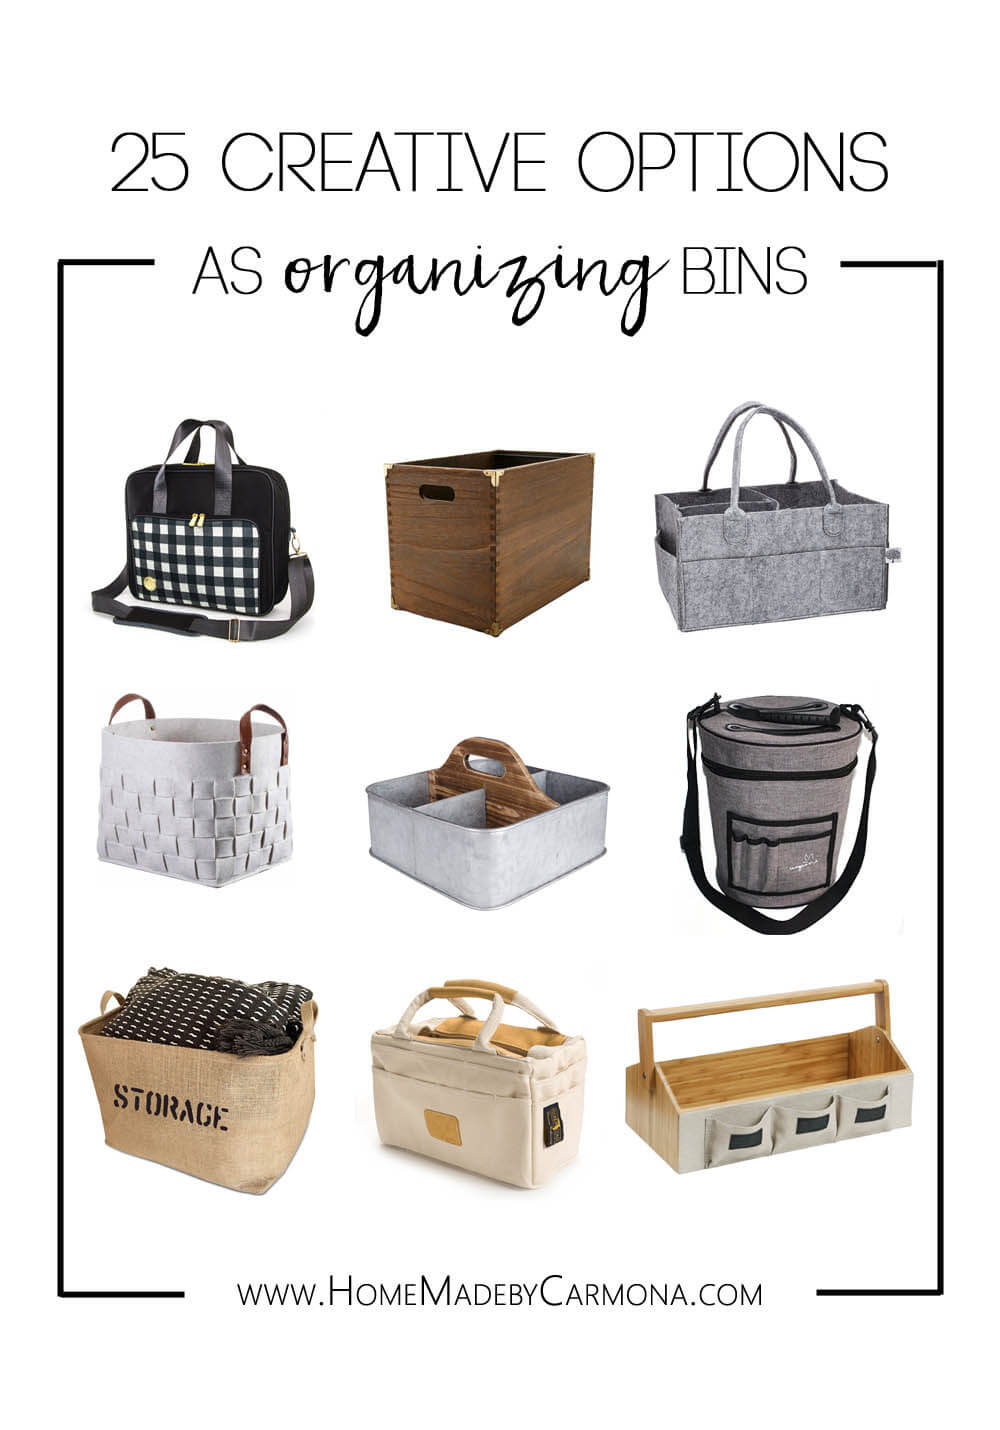 25 Creative Options as Organizing Bins